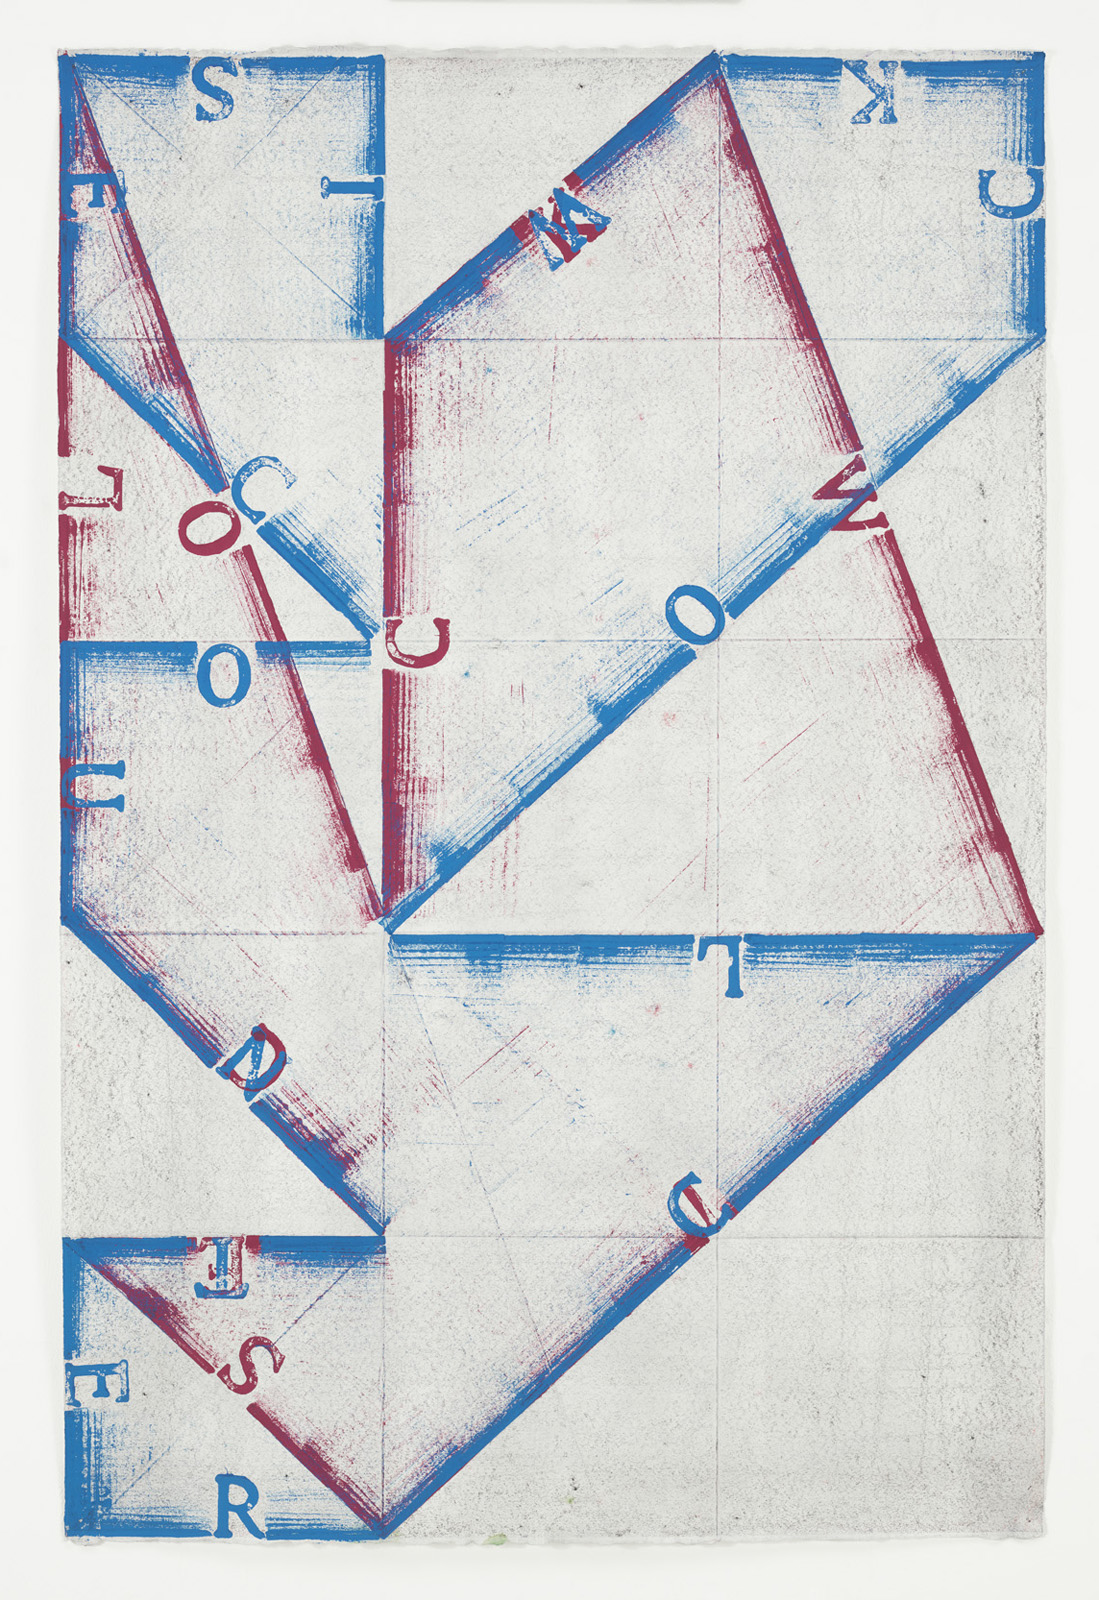 <p><em>Clockwise/Counterclockwise</em><span class='media'>Block-printing ink, Sumi ink, crayon, graphite and natural pigments on hand-made paper</span>47.5 x 31.5 in (120.7 x 80 cm)<br>34 5/8 x 50 in (87.9 x 127 cm) Framed (framed)<br>2015<br><a class='inquire' href='mailto:info@gildargallery.com?subject=Artwork Inquiry NPOL0013&body=I am interested in finding out more about Clockwise/Counterclockwise by Noah Pollack'>Inquire</a></p>